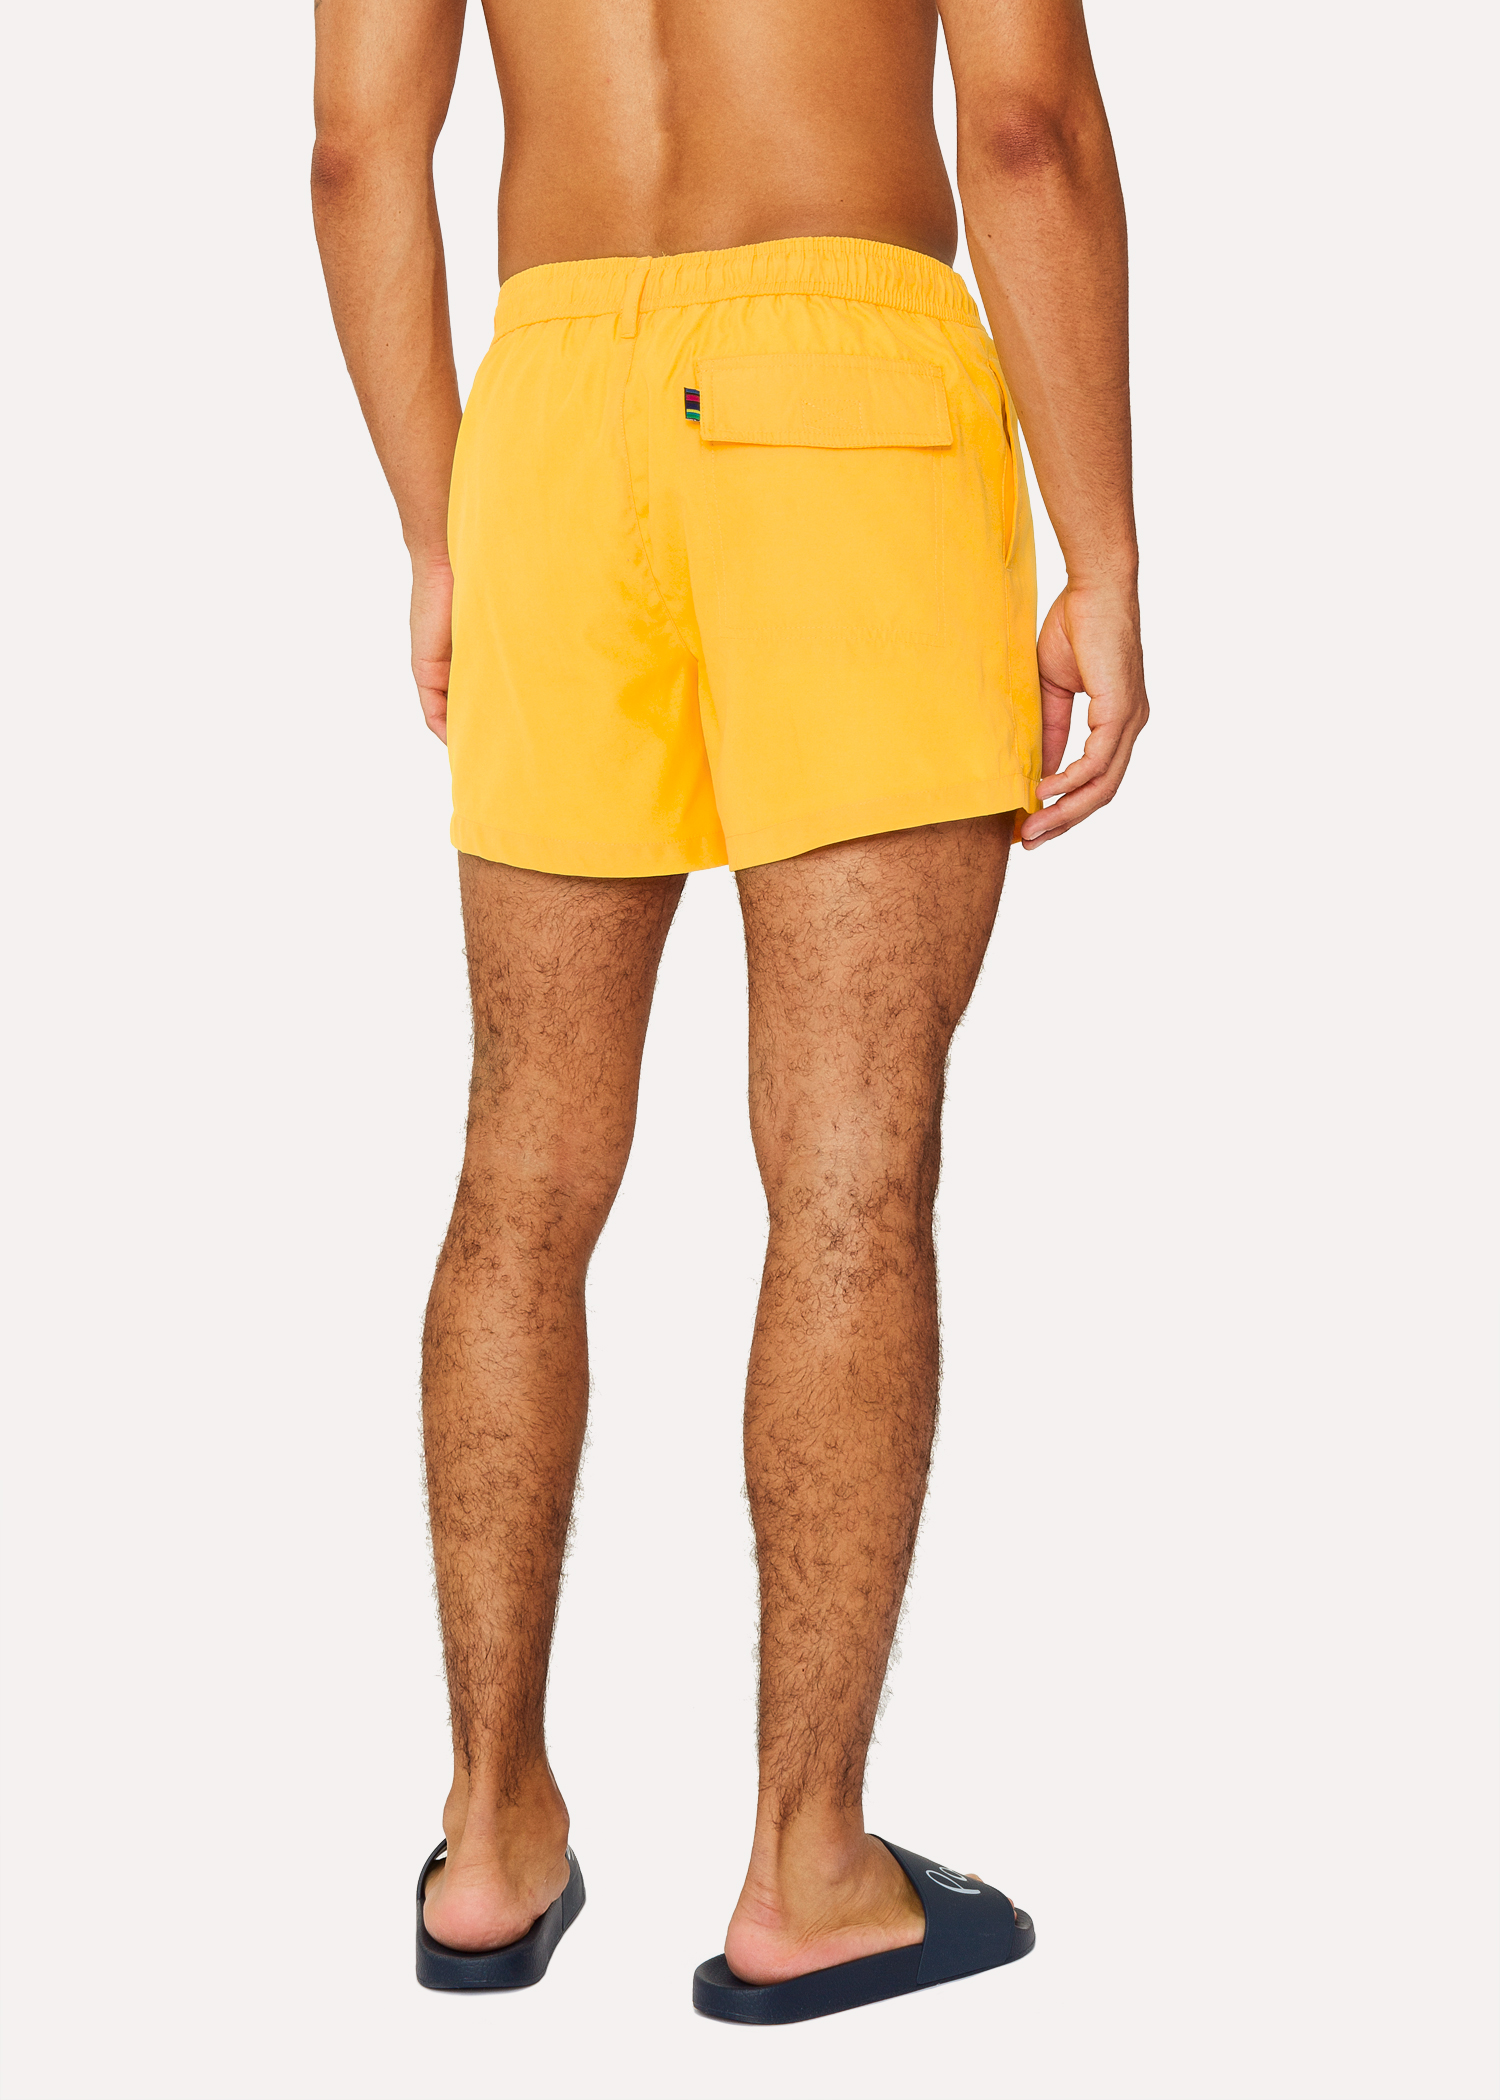 e0d4d04679 Men's Yellow Zebra Logo Swim Shorts - Paul Smith